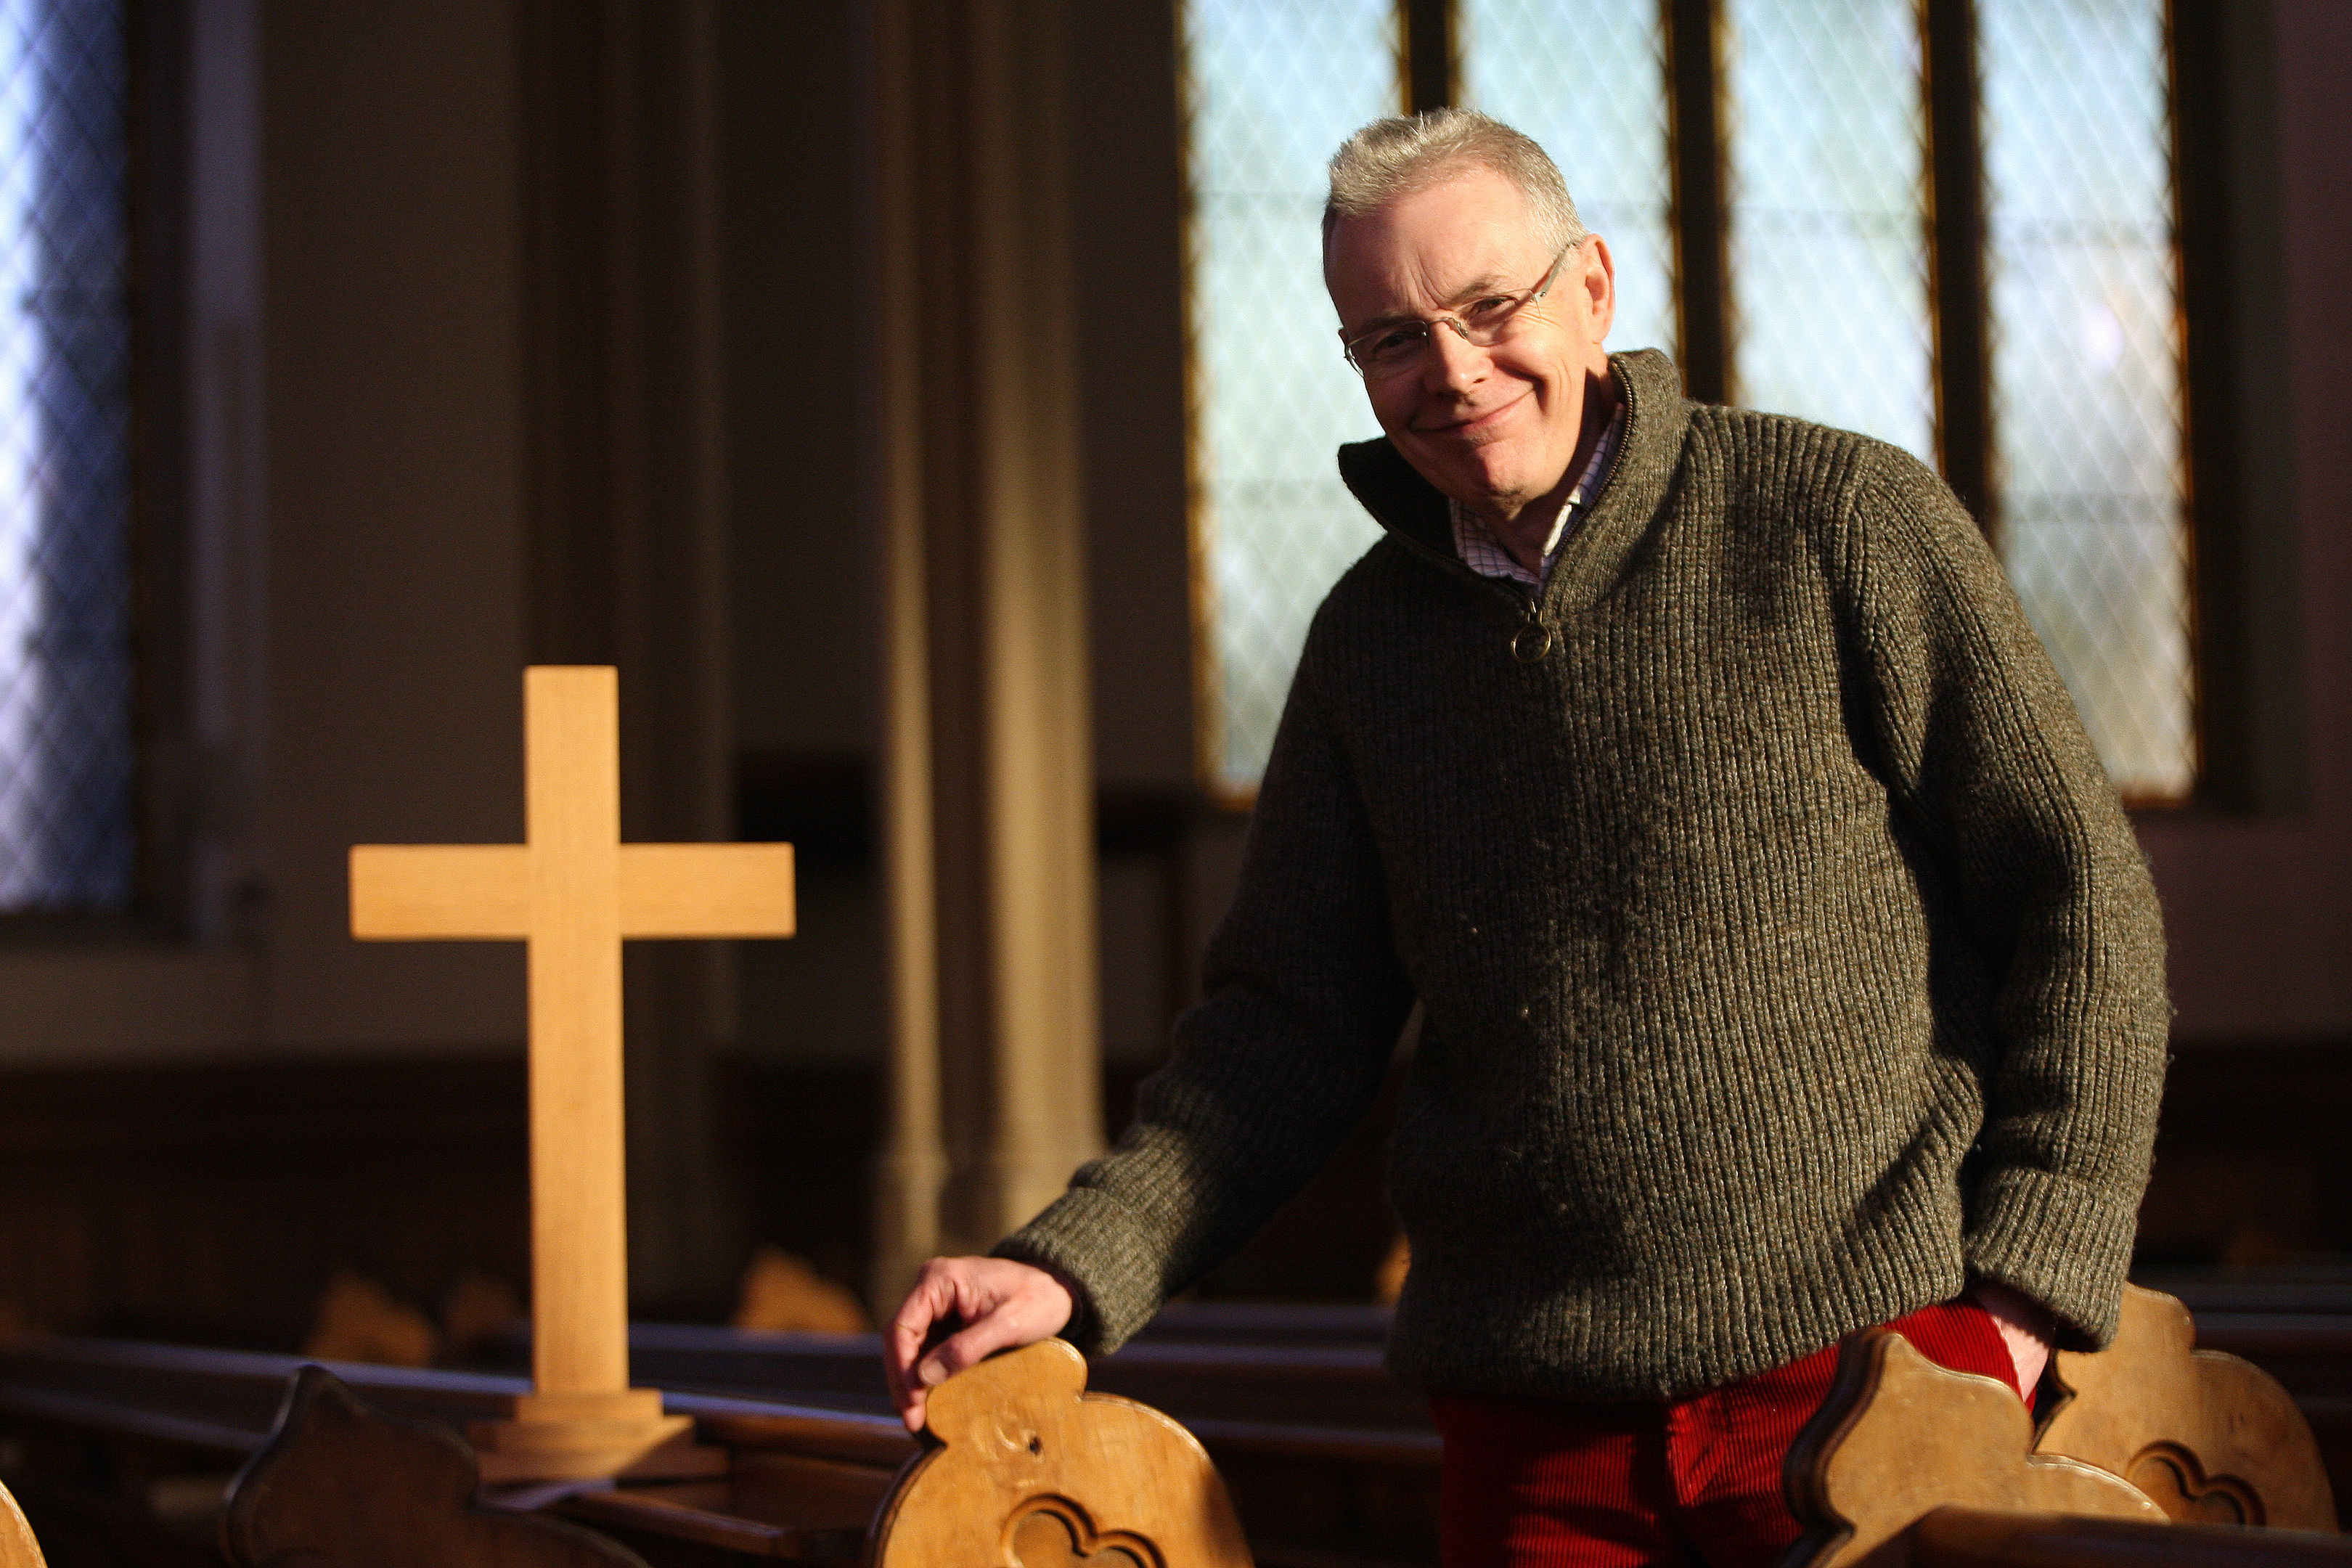 Mr Sharp feels churches throughout Scotland have to evolve.